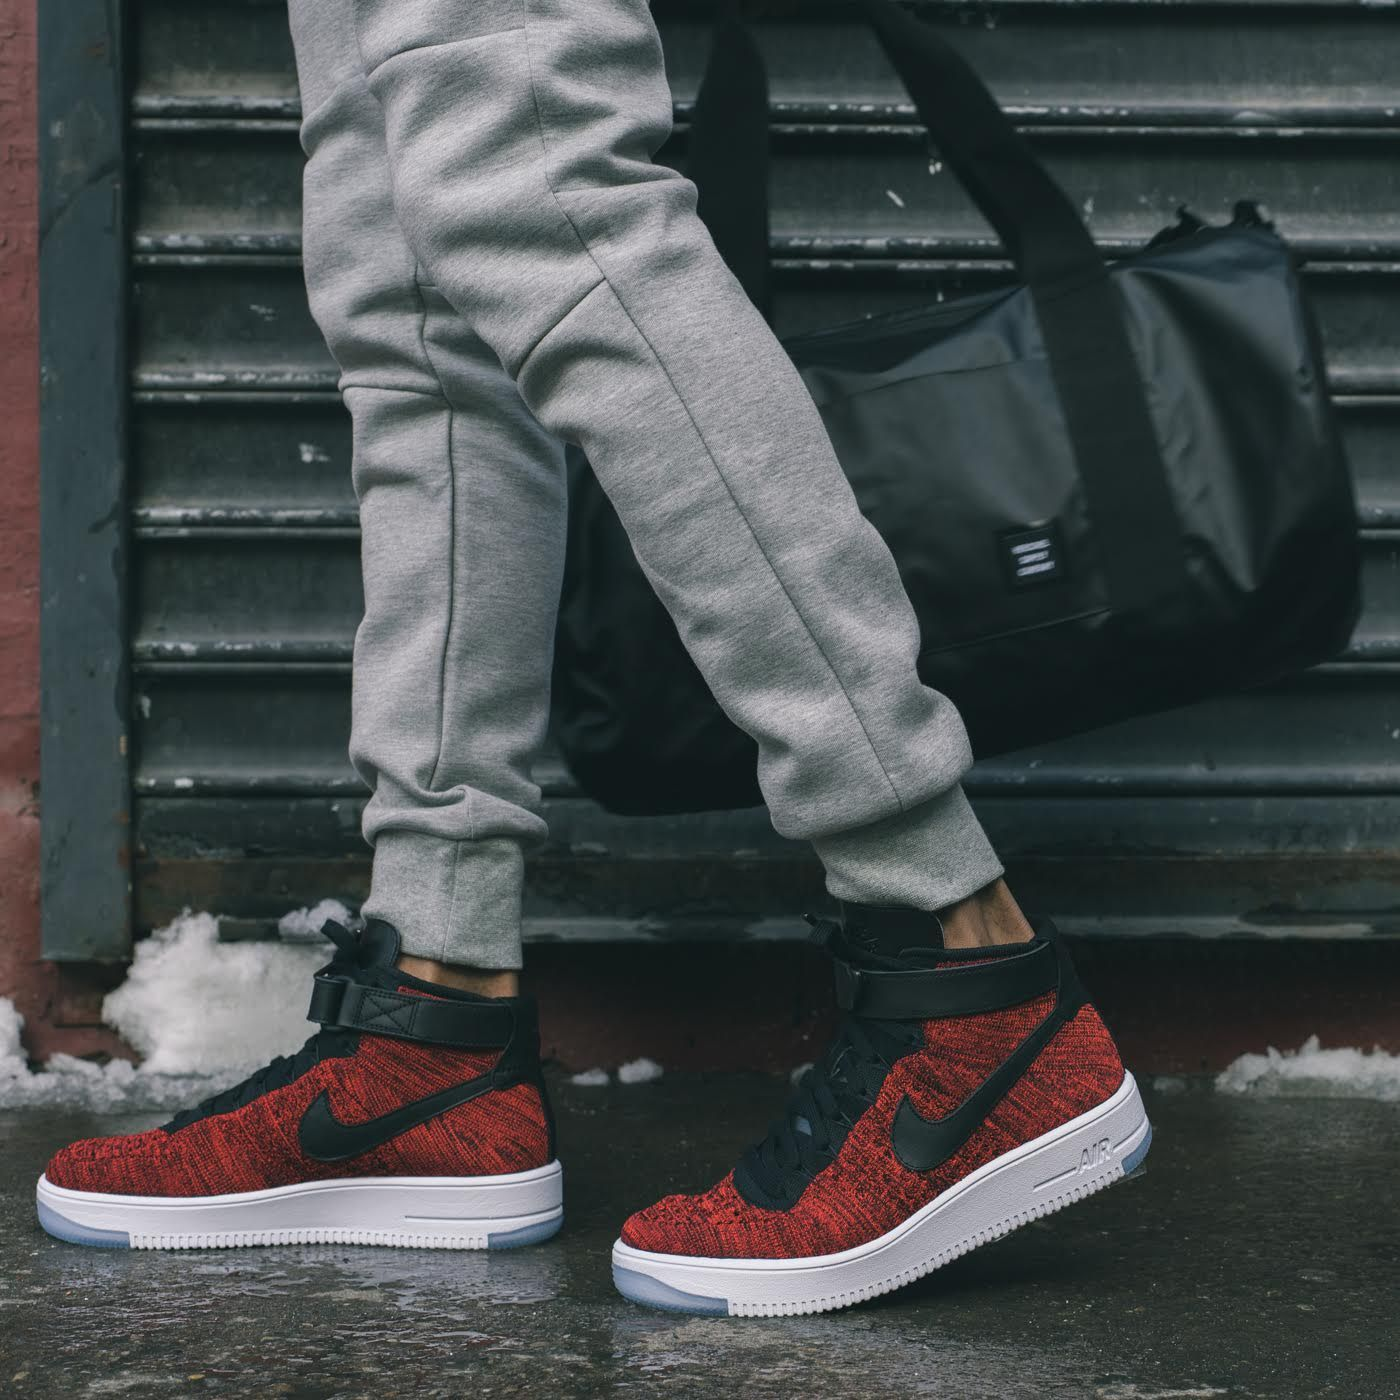 Lanzamiento Centro comercial evaporación  An On-Feet Look At The Nike Air Force 1 Ultra Flyknit Red / Black •  KicksOnFire.com in 2020 | Nike, Nike air force, Sneakers men fashion